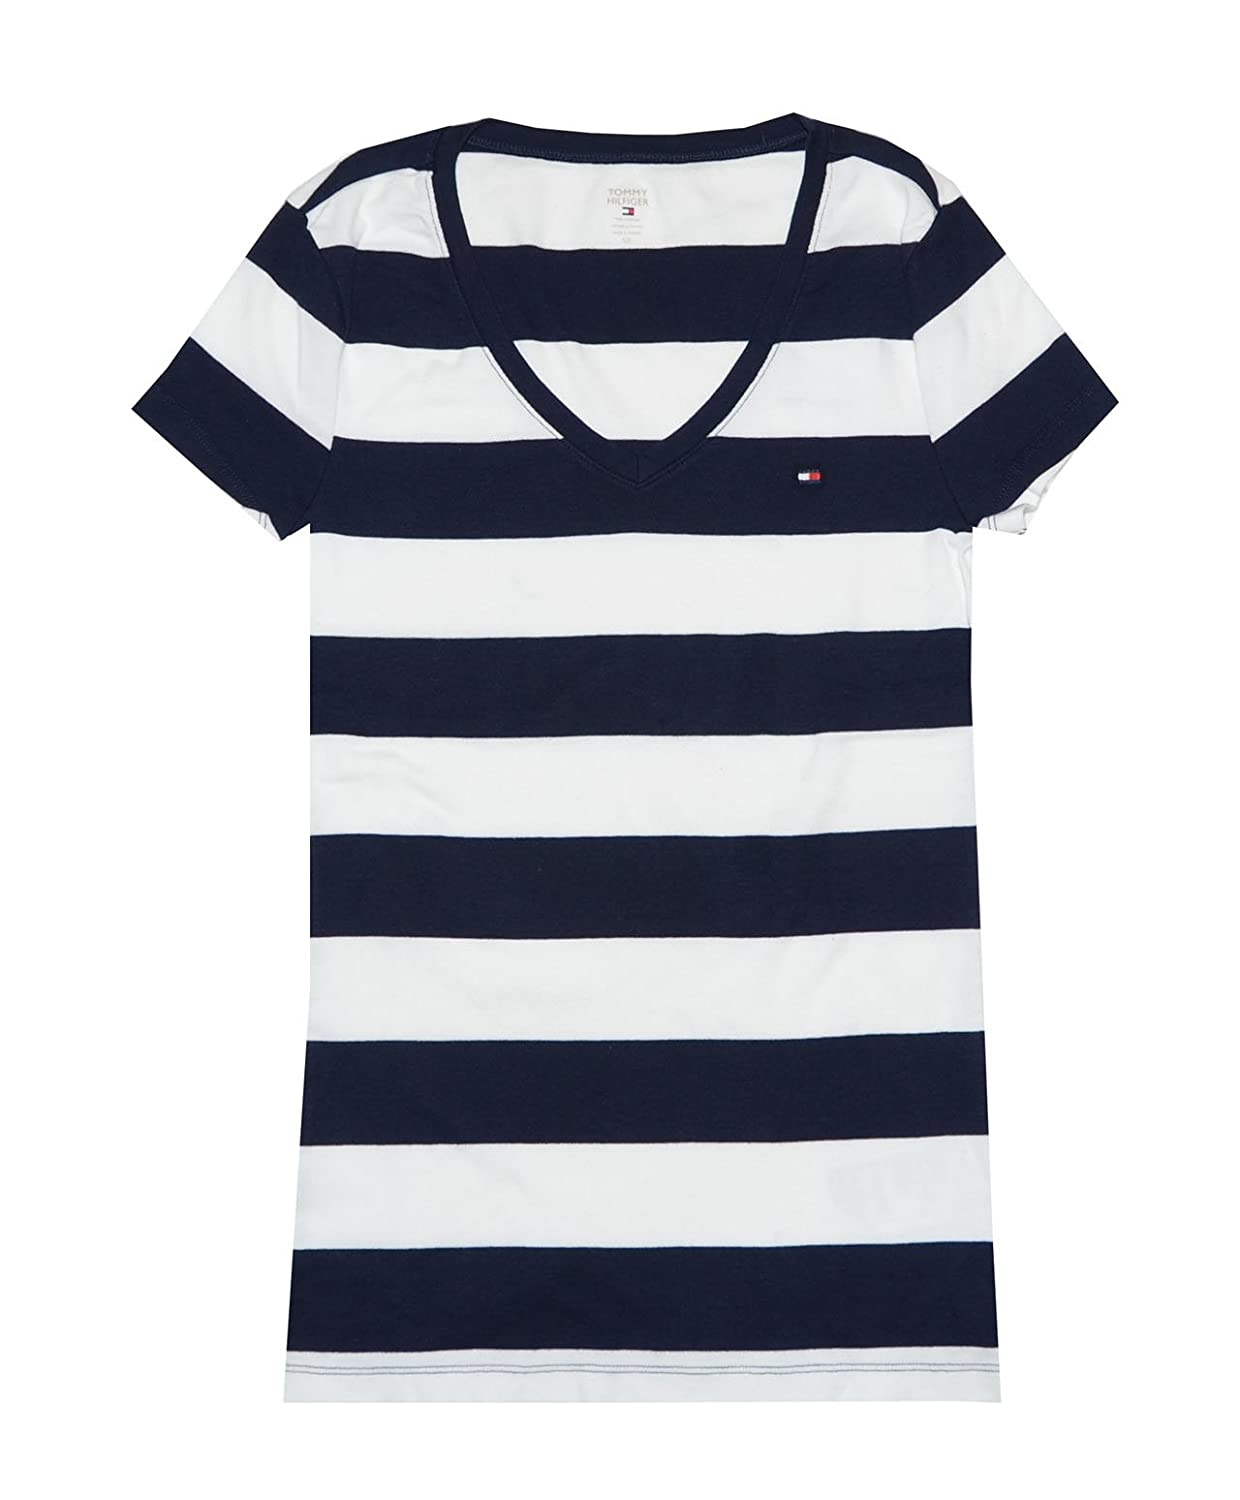 Amazon.com: Tommy Hilfiger Women Wide Stripes Logo V-Neck T-Shirt: Clothing